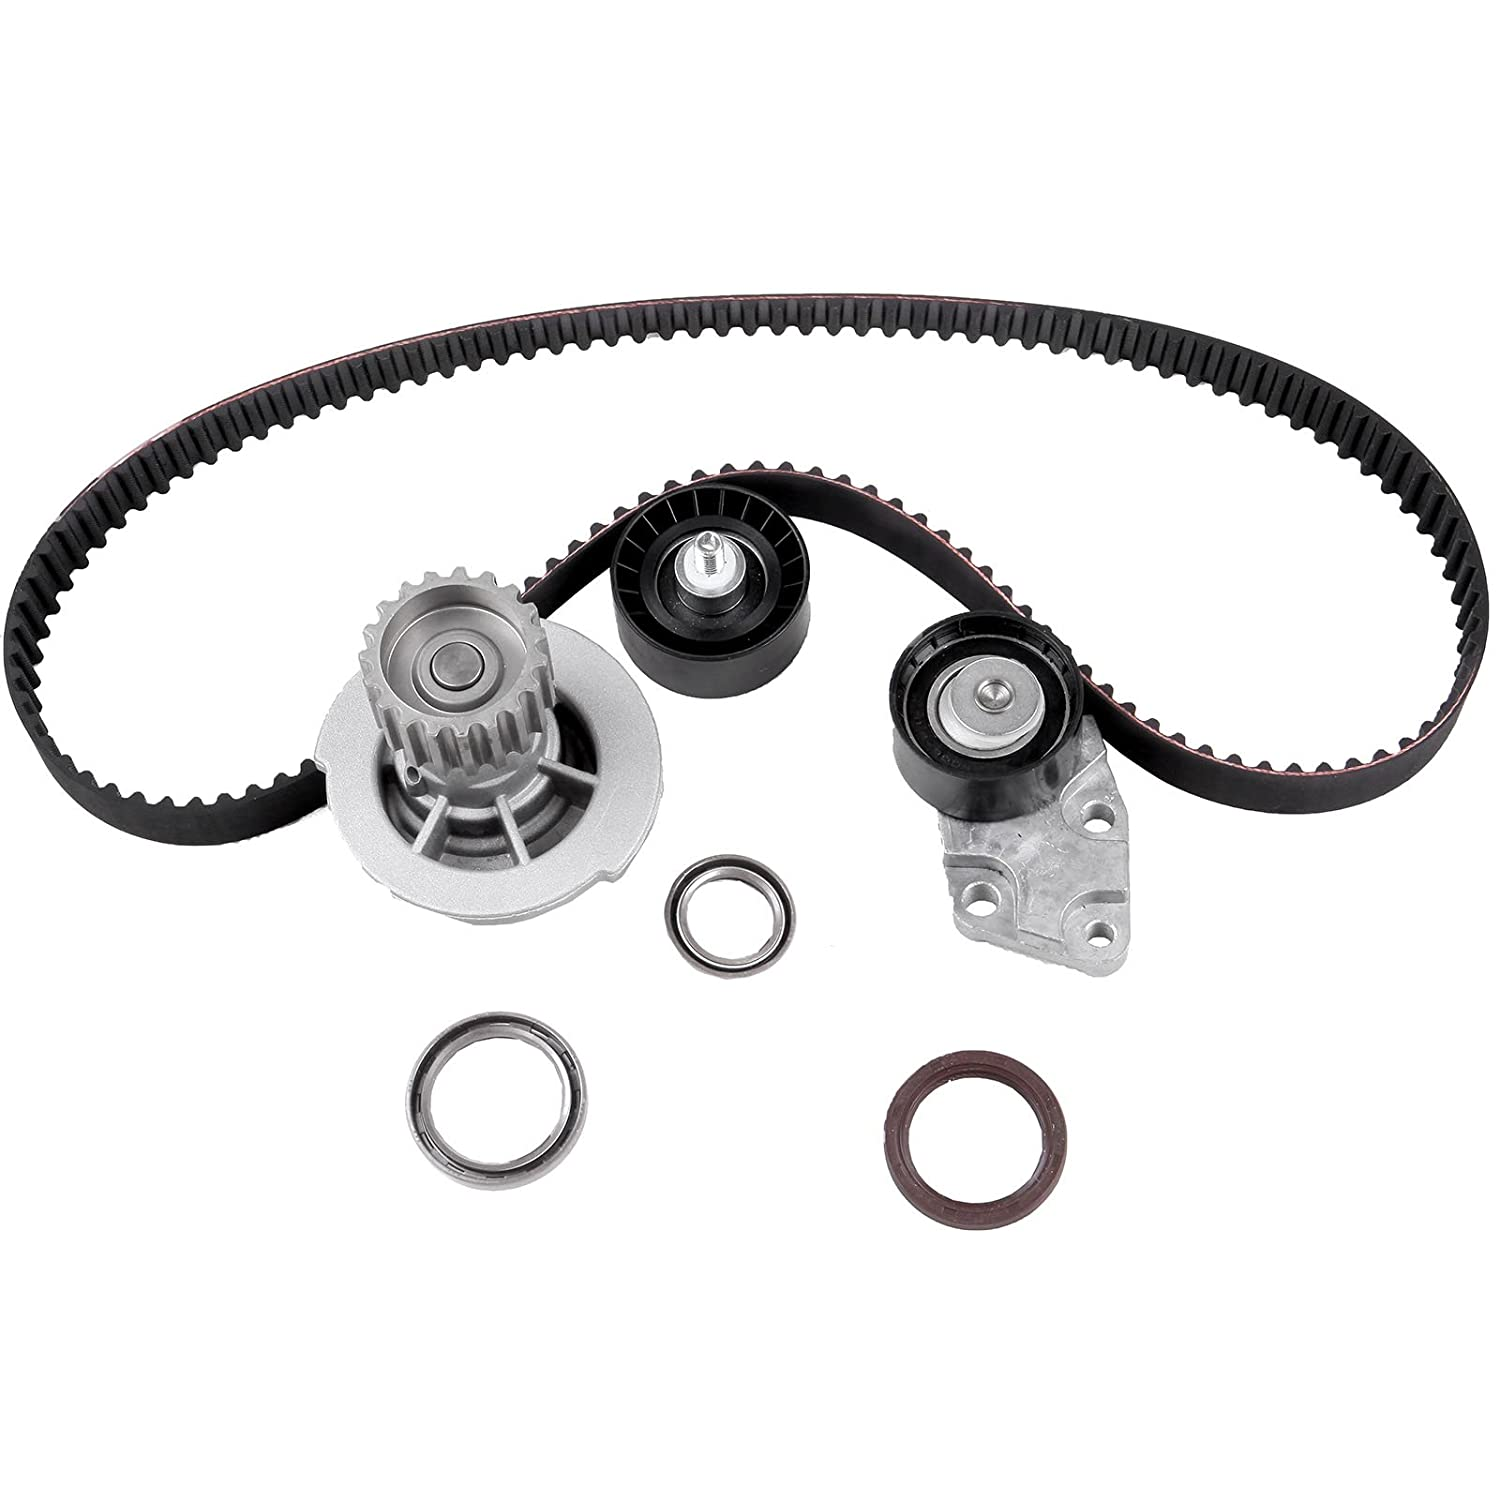 OCPTY Timing Belt Kit Including Timing Belt Water Pump with Gasket tensioner Bearing etc Compatible for 2004 2005 2006 2007 2008 Chevrolet Aveo//2007 2008 Chevrolet Aveo5